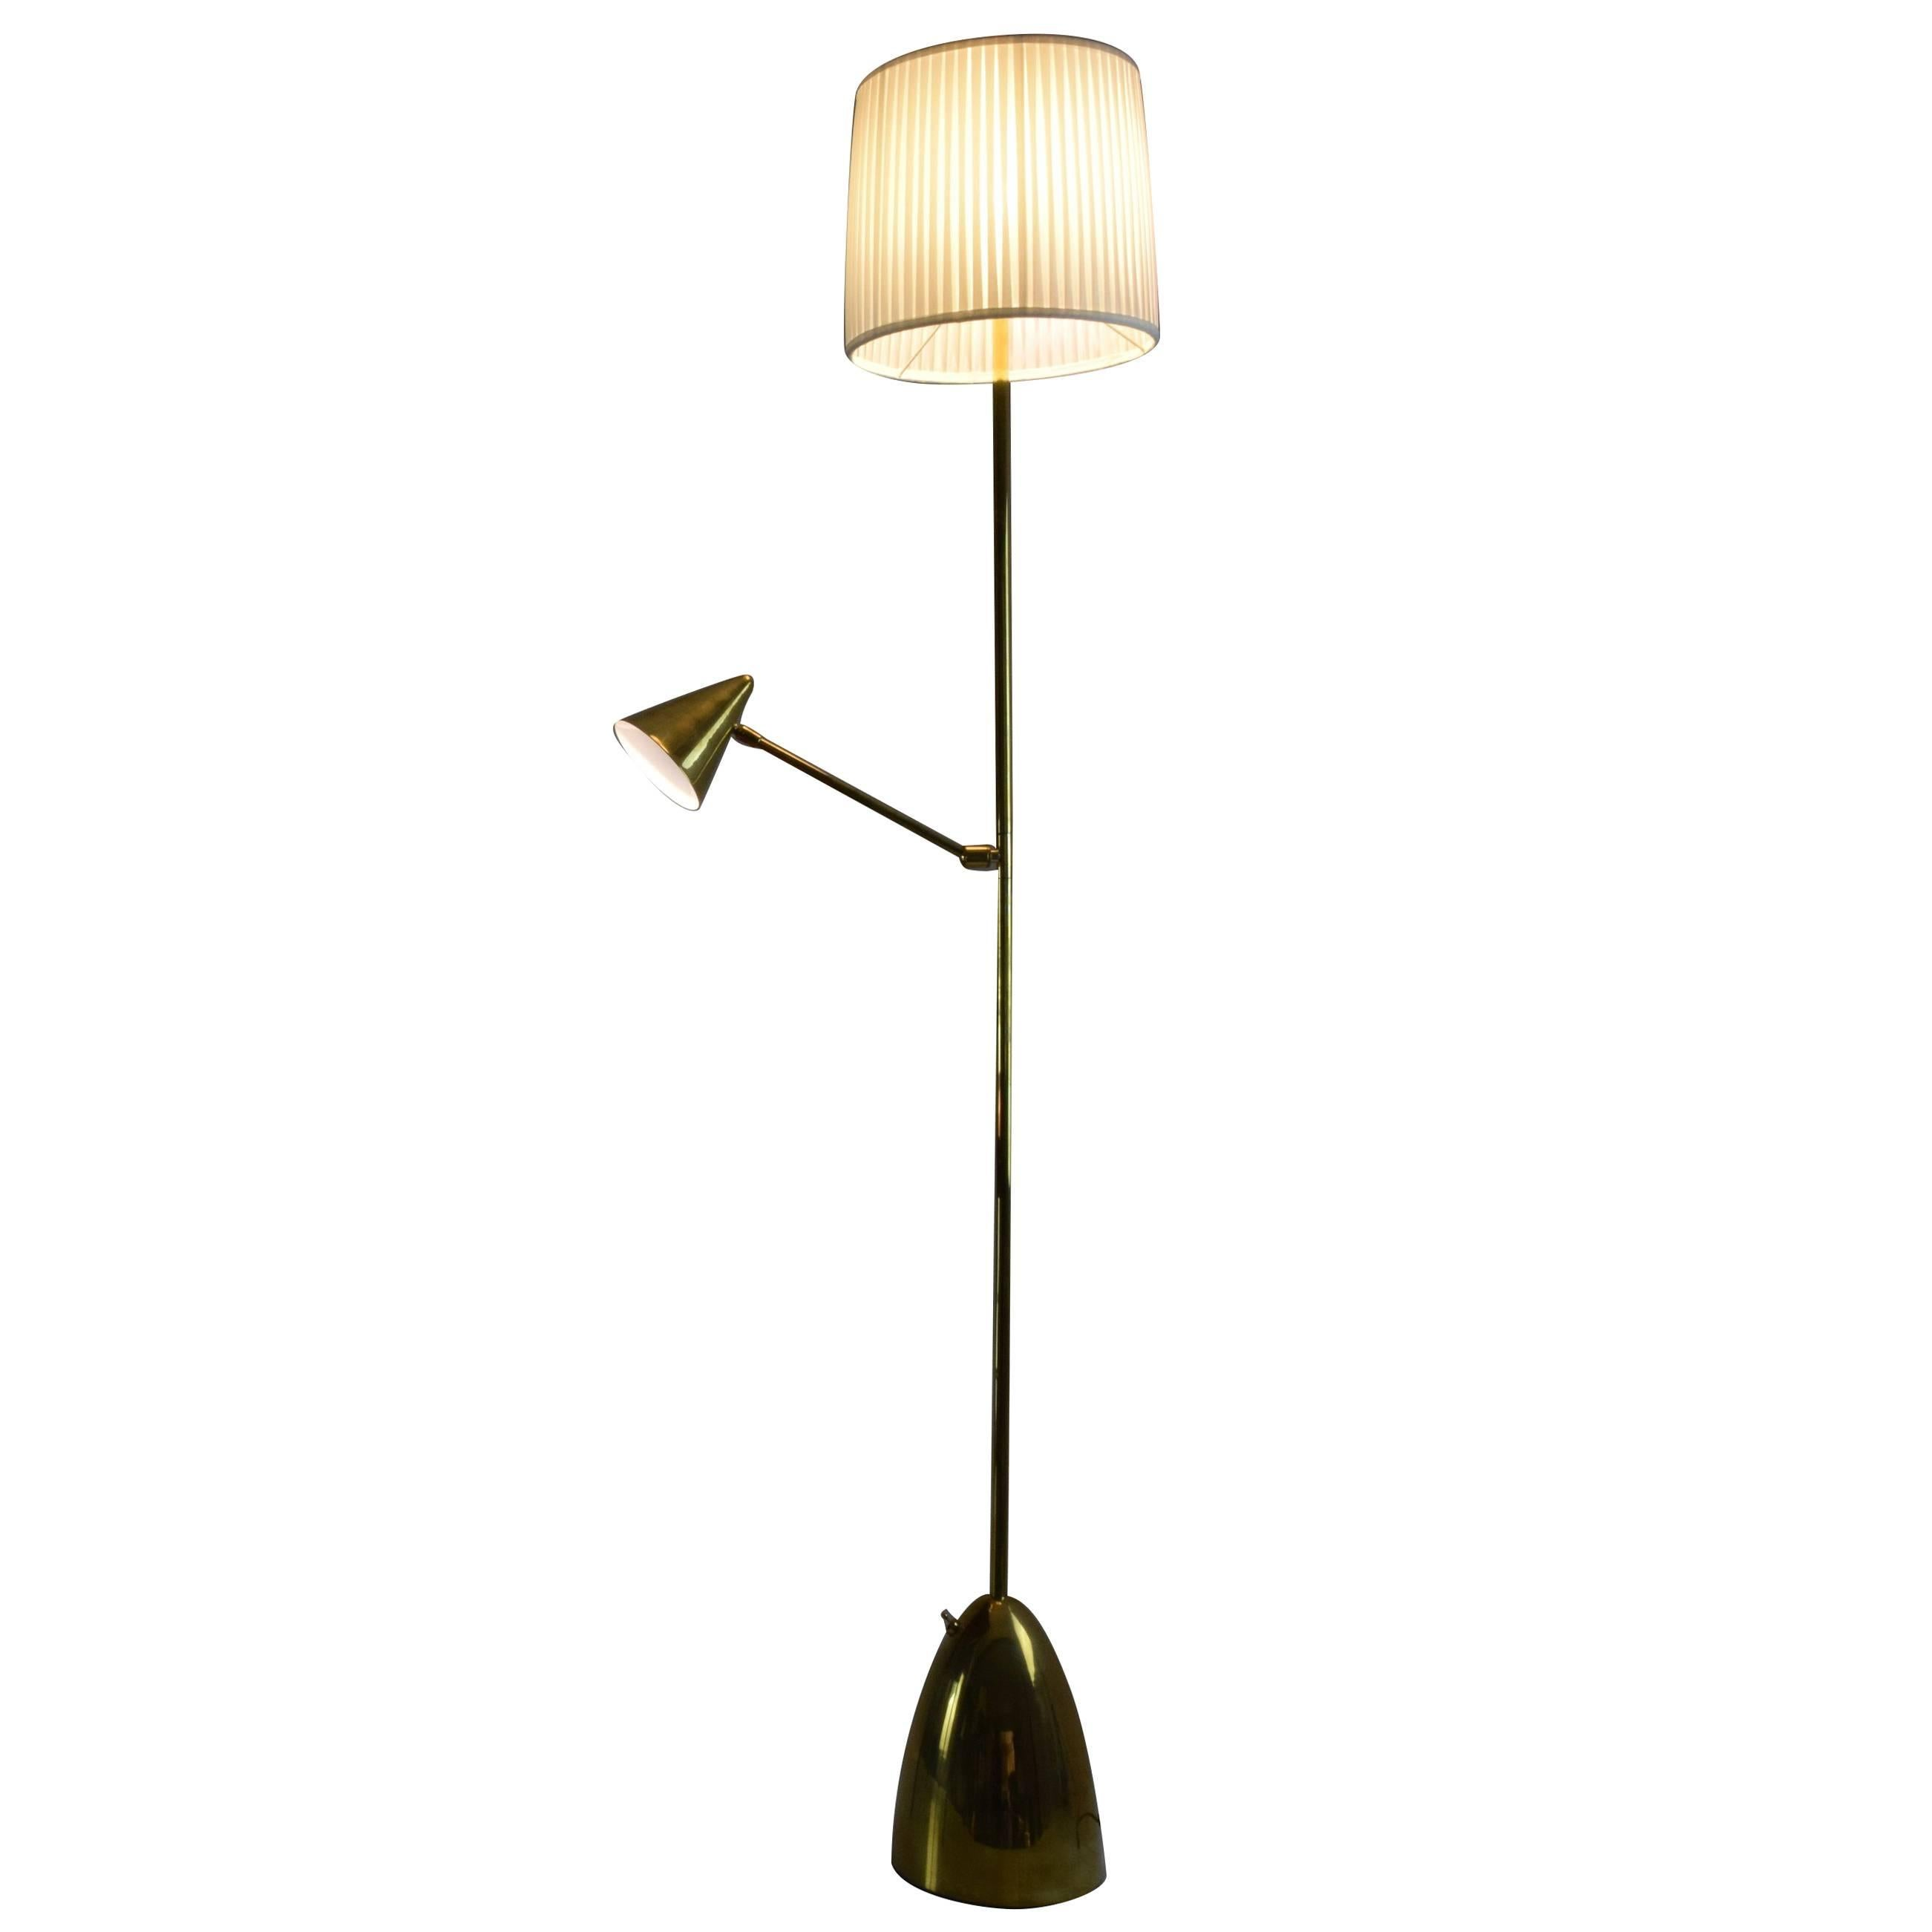 De-Light F1 Contemporary Double Light Brass Floor Lamp, Flow Collection